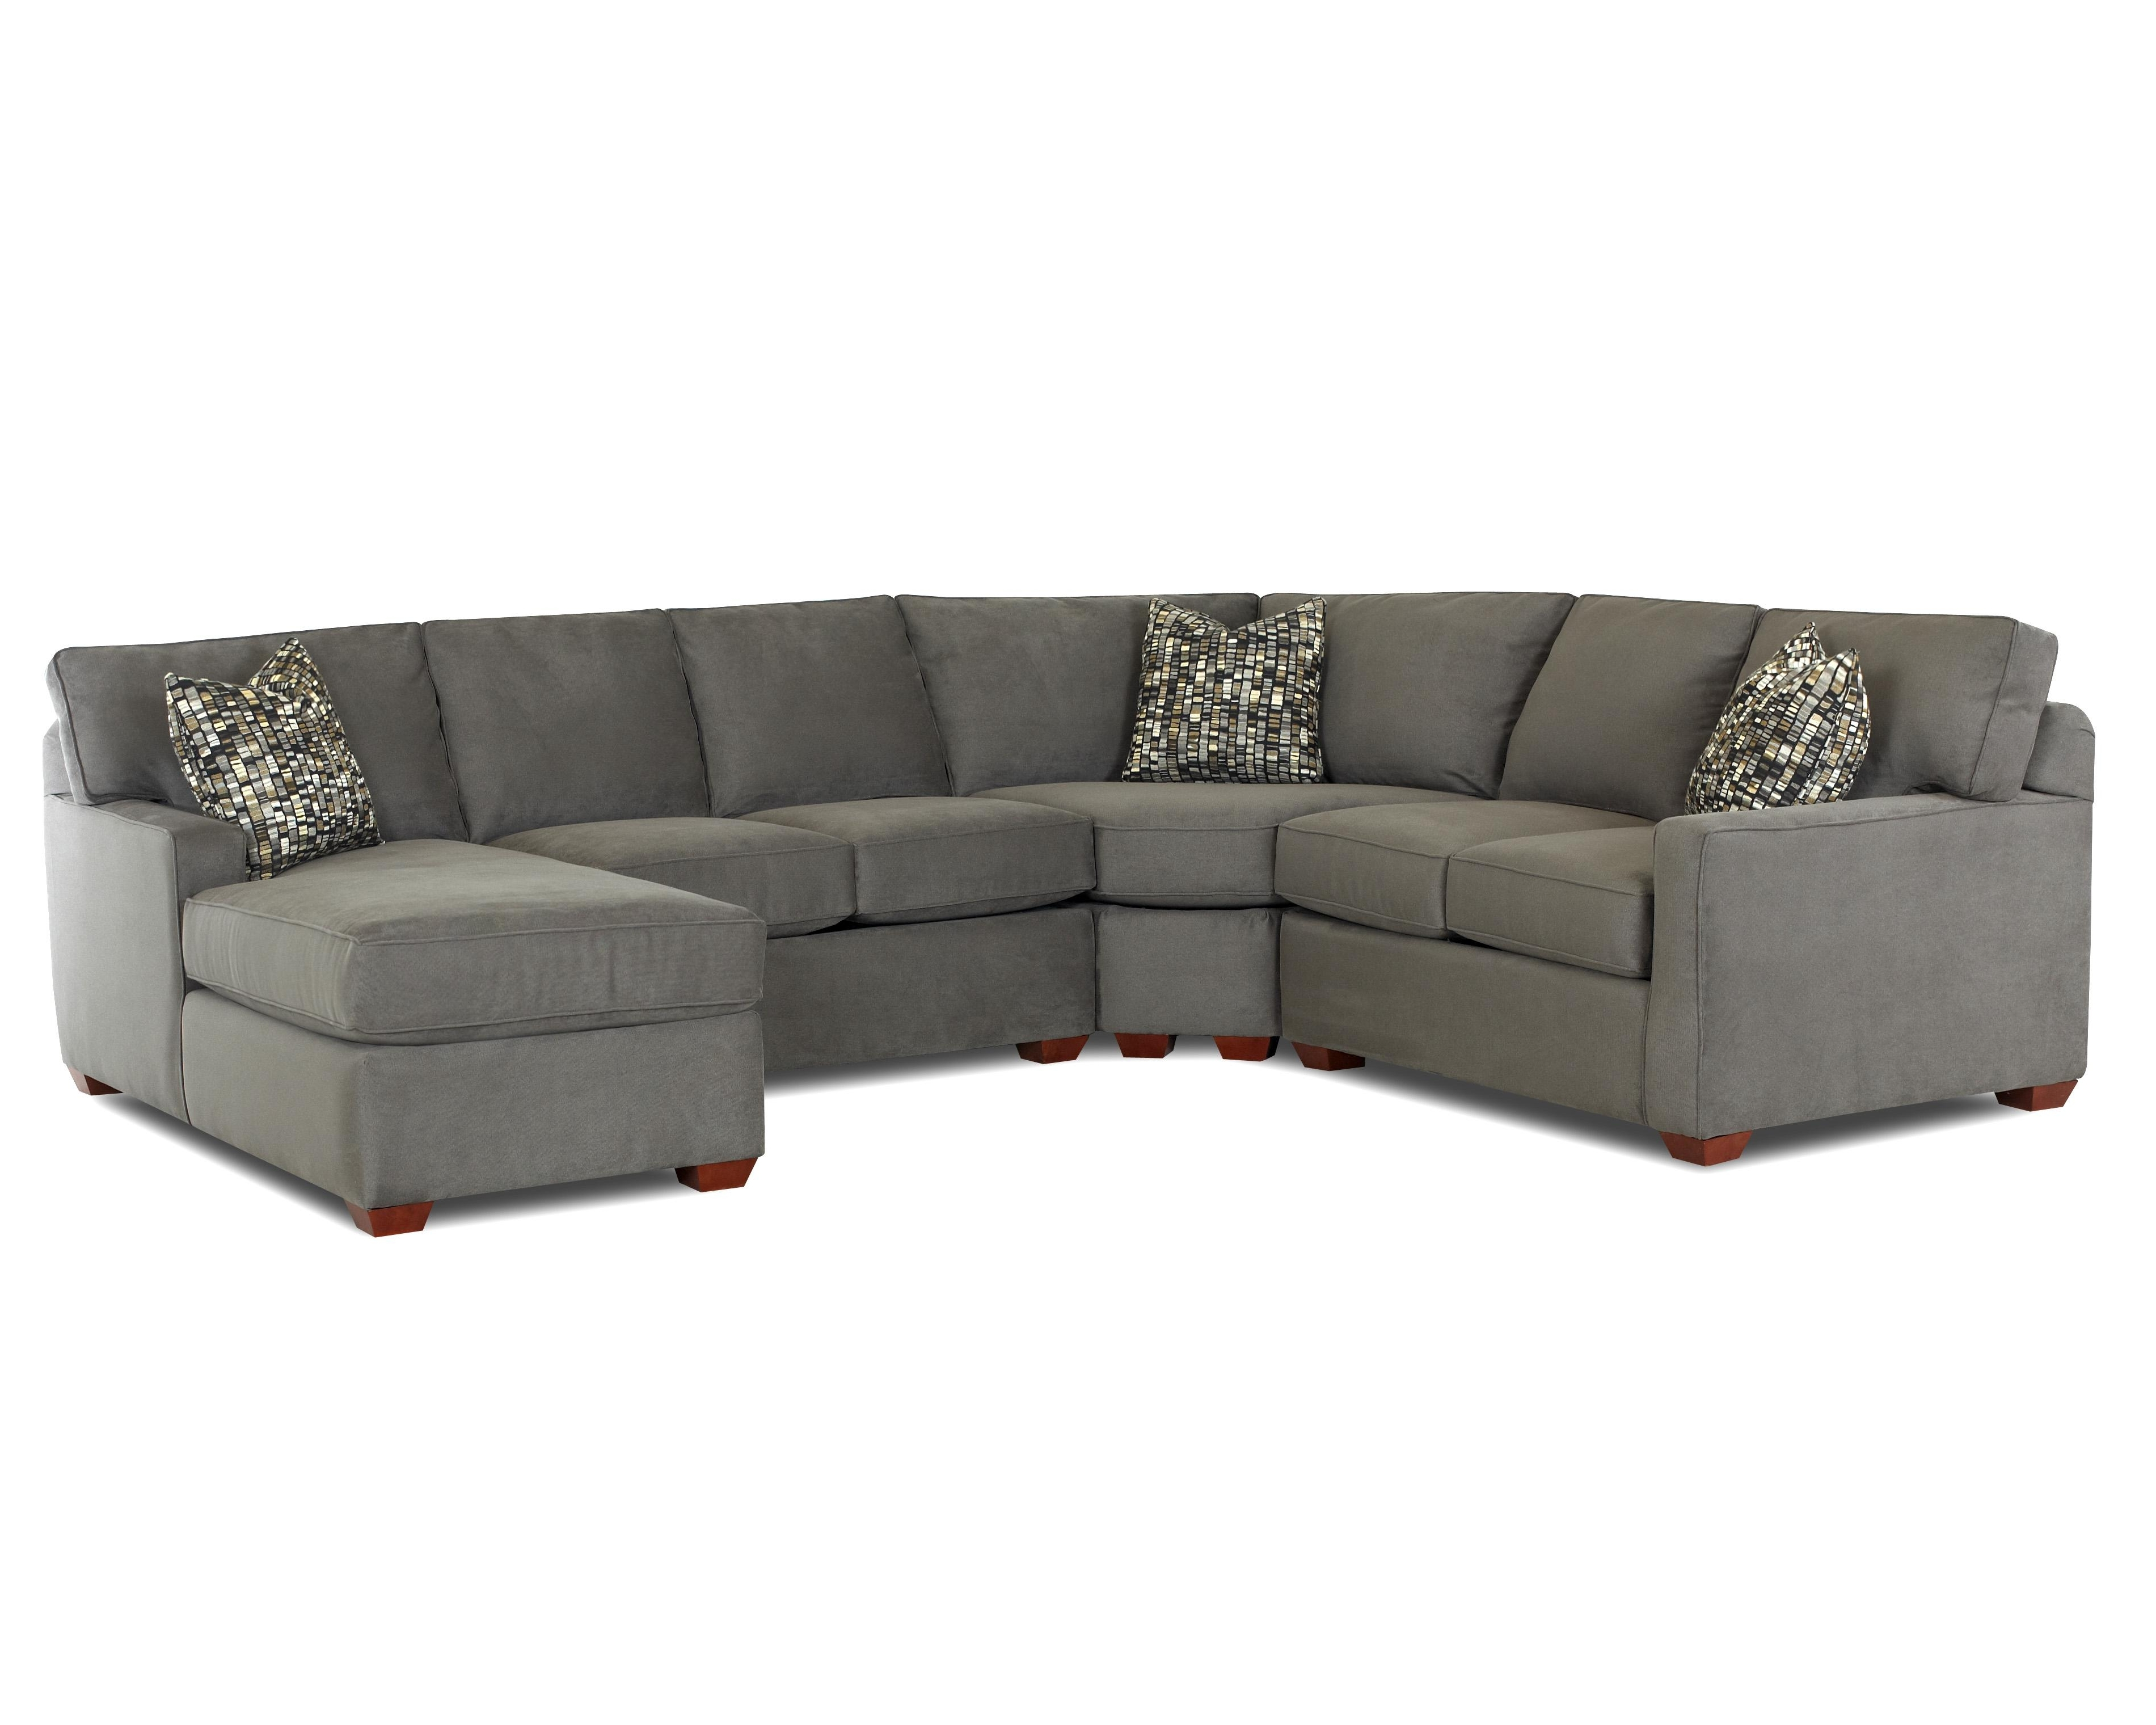 Well Known L Shaped Couches With Chaise With Regard To Contemporary L Shaped Sectional Sofa With Right Arm Facing Chaise (View 2 of 15)